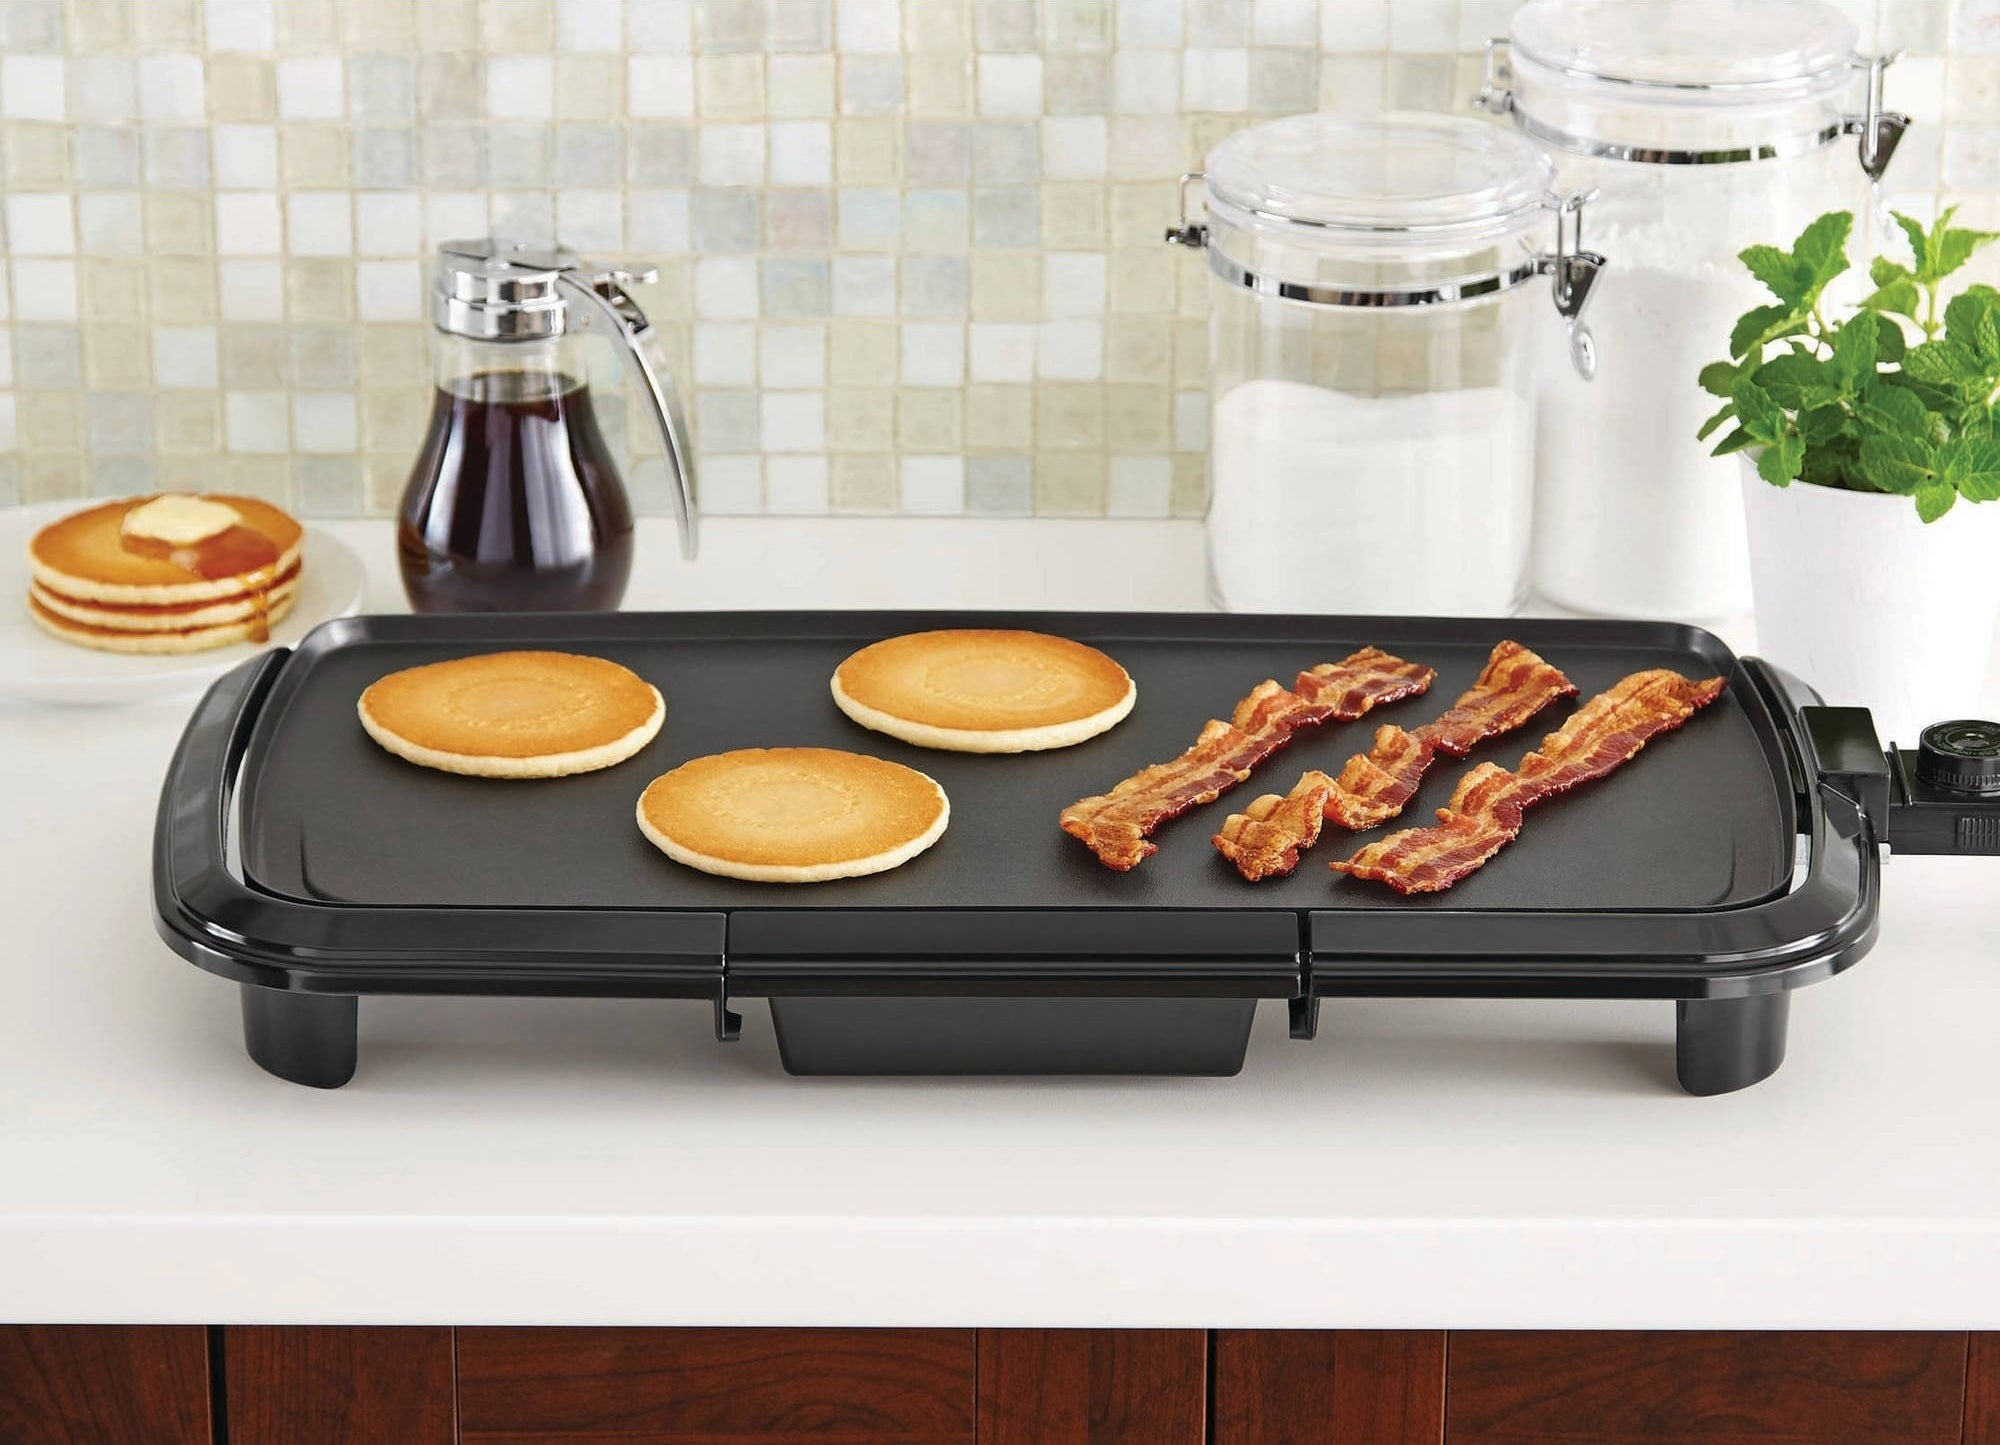 The black griddle with pancakes and bacon on a counter